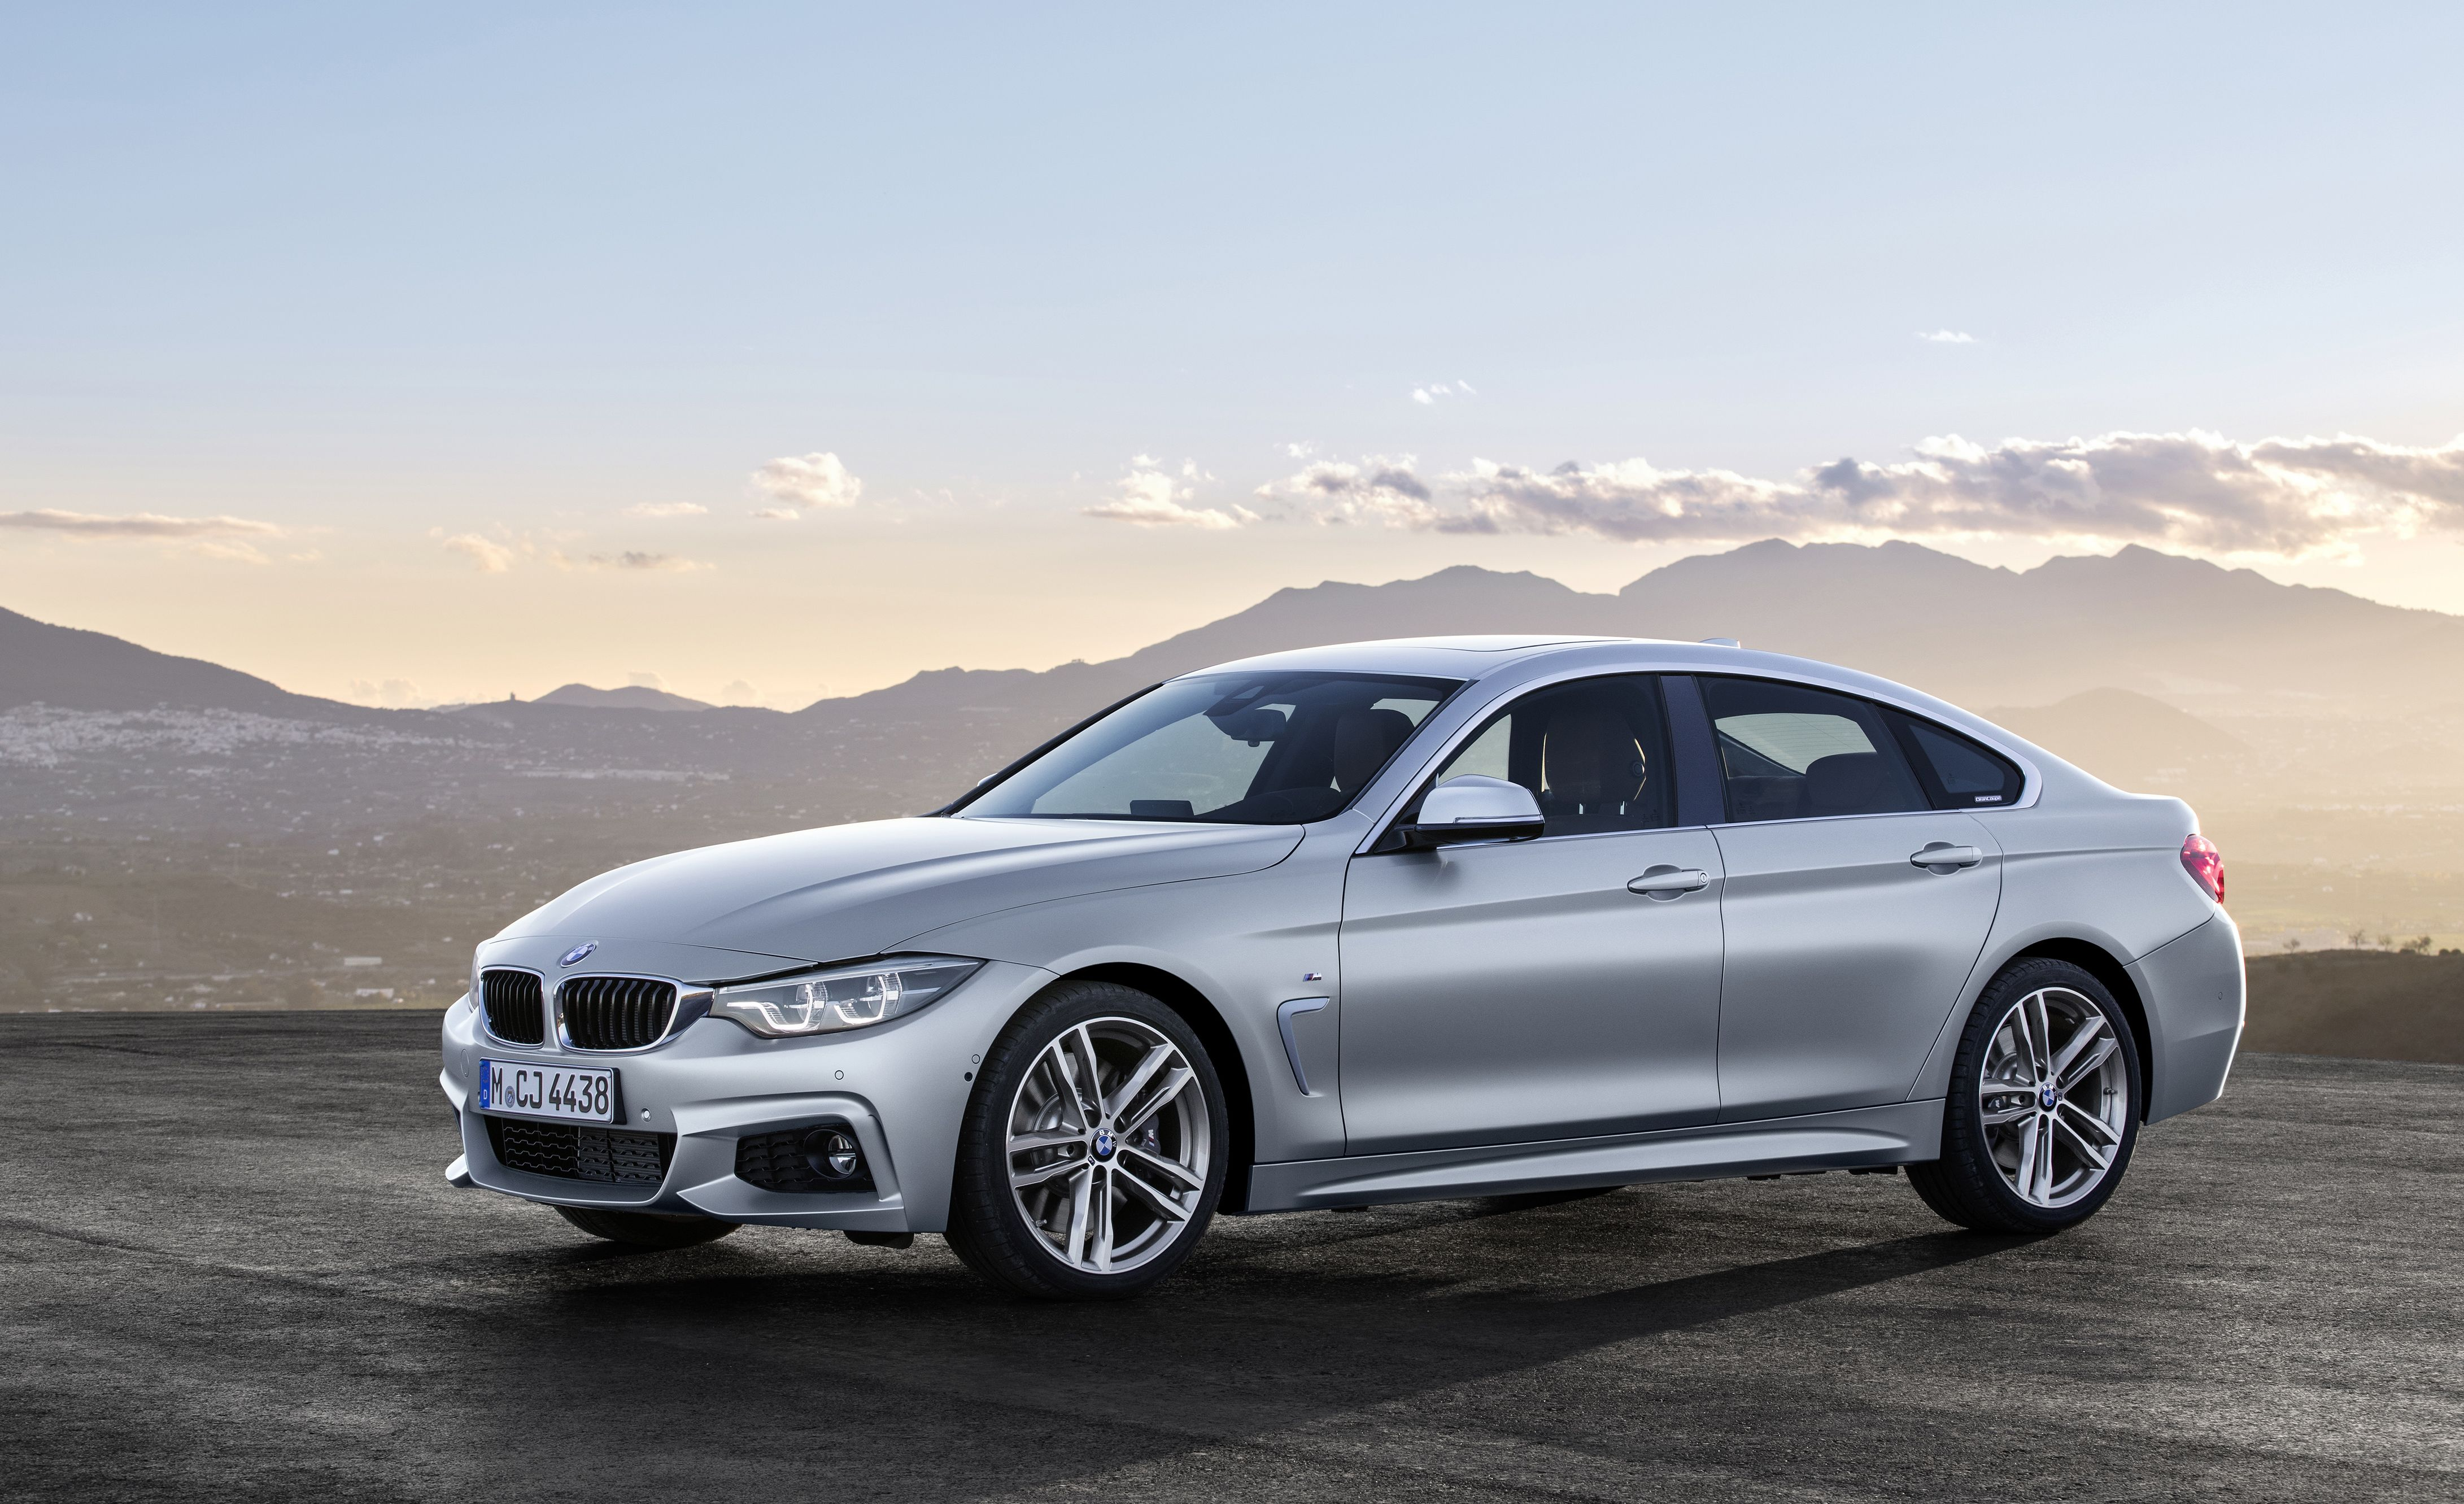 """10. BMW 4-series Gran Coupe Adding """"Gran Coupe"""" to the 4-series name, and what do you get? The four-door BMW 4-series Gran Coupe , which combines attributes of the standard 3-series sedan and the two-door 4-series coupe much in the same way Audi's A5 Sportback combines A5 and A4 elements."""